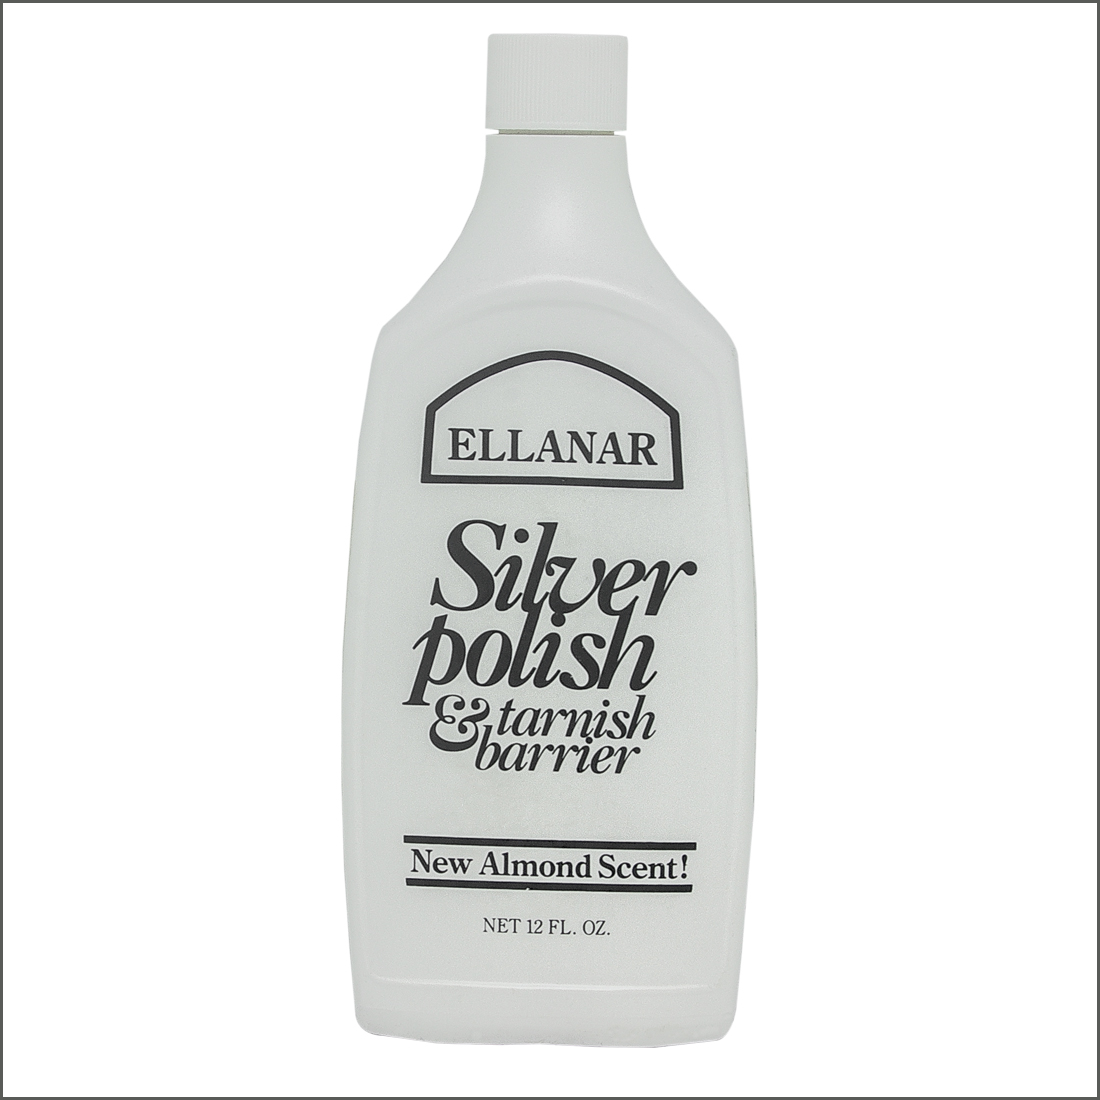 Ellanar Silver Polish Tarnish Barrier Cream